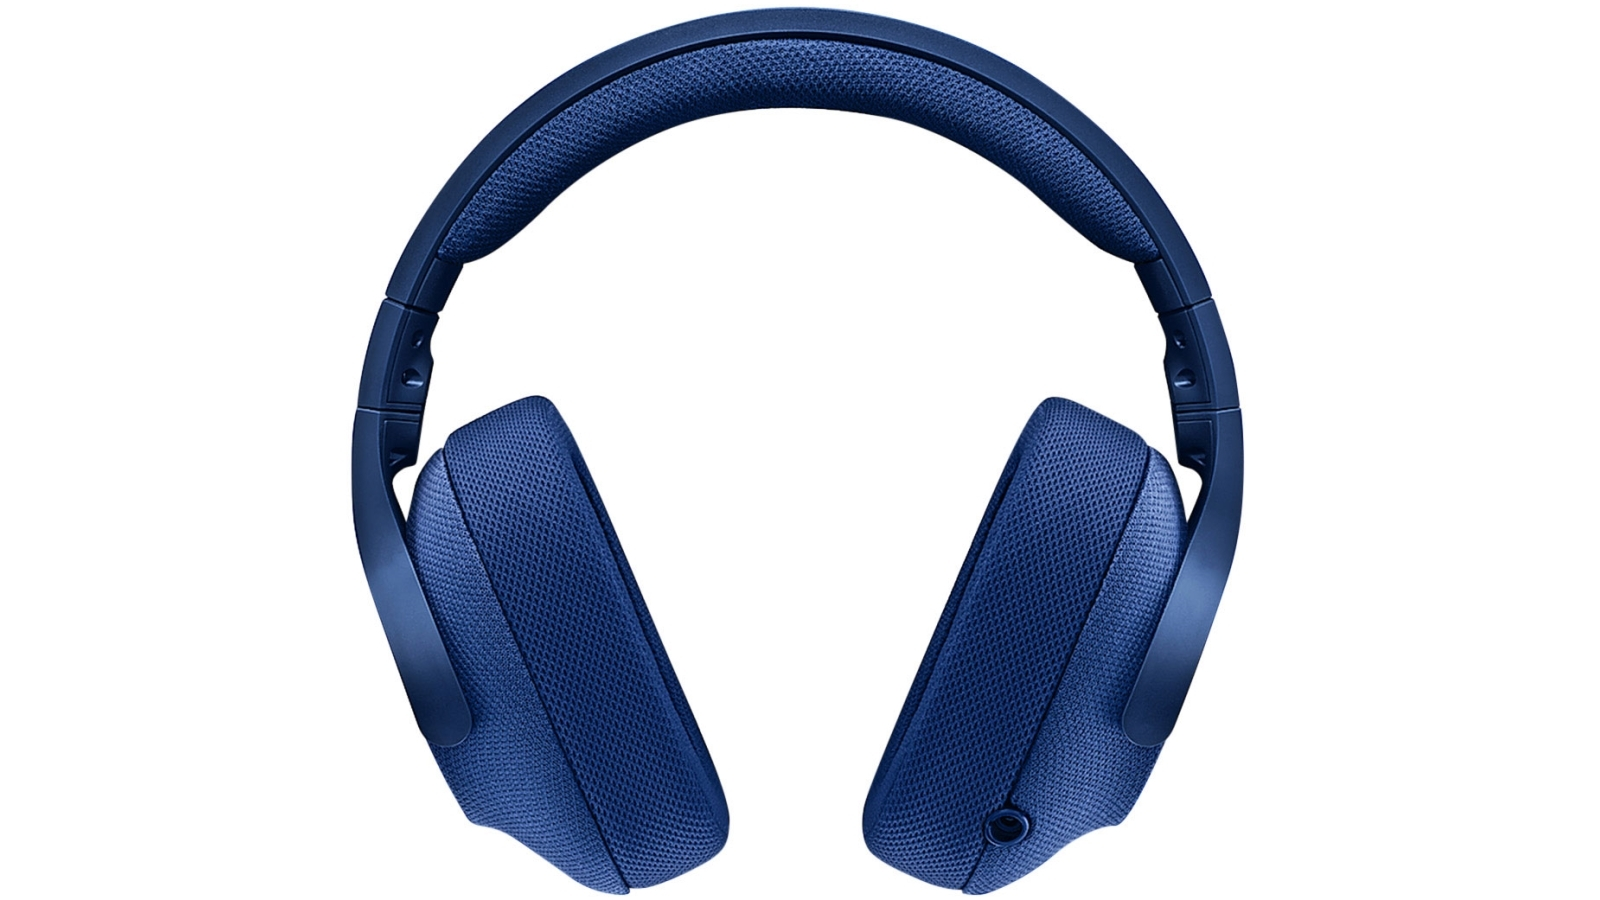 3e4af201028 Buy Logitech G433 7.1 Wired Surround Gaming Headset - Blue | Harvey Norman  AU